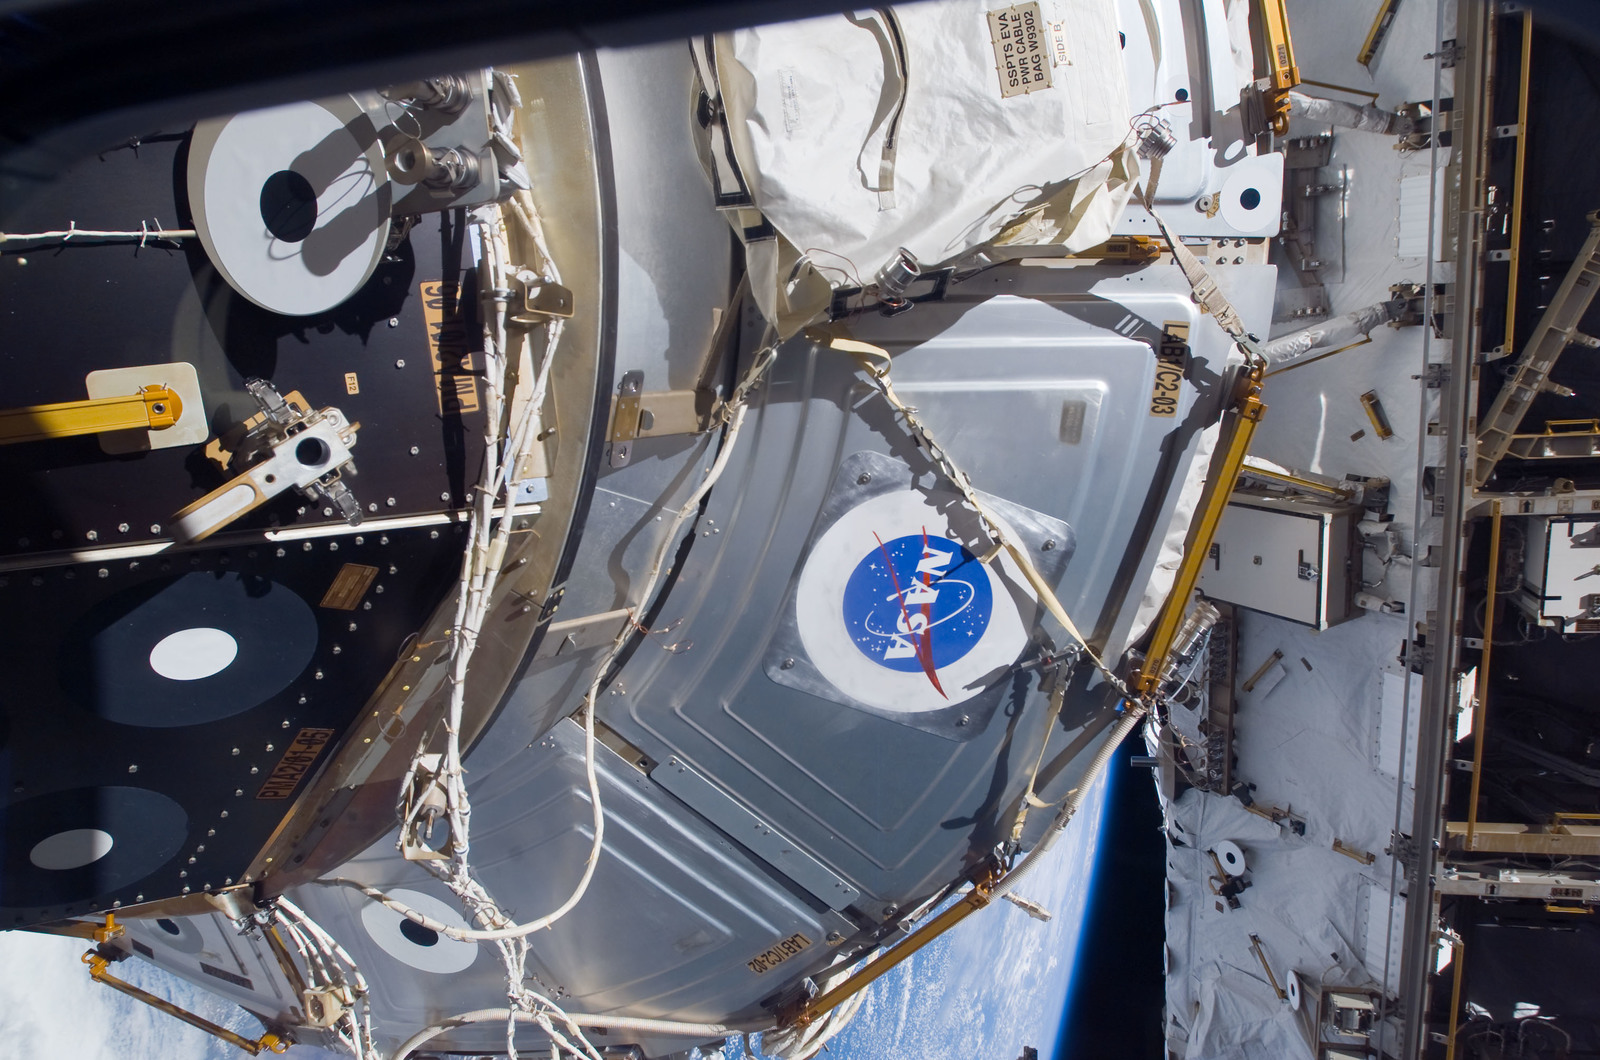 S118E07532 - STS-118 - Exterior view of the ISS taken during STS-118